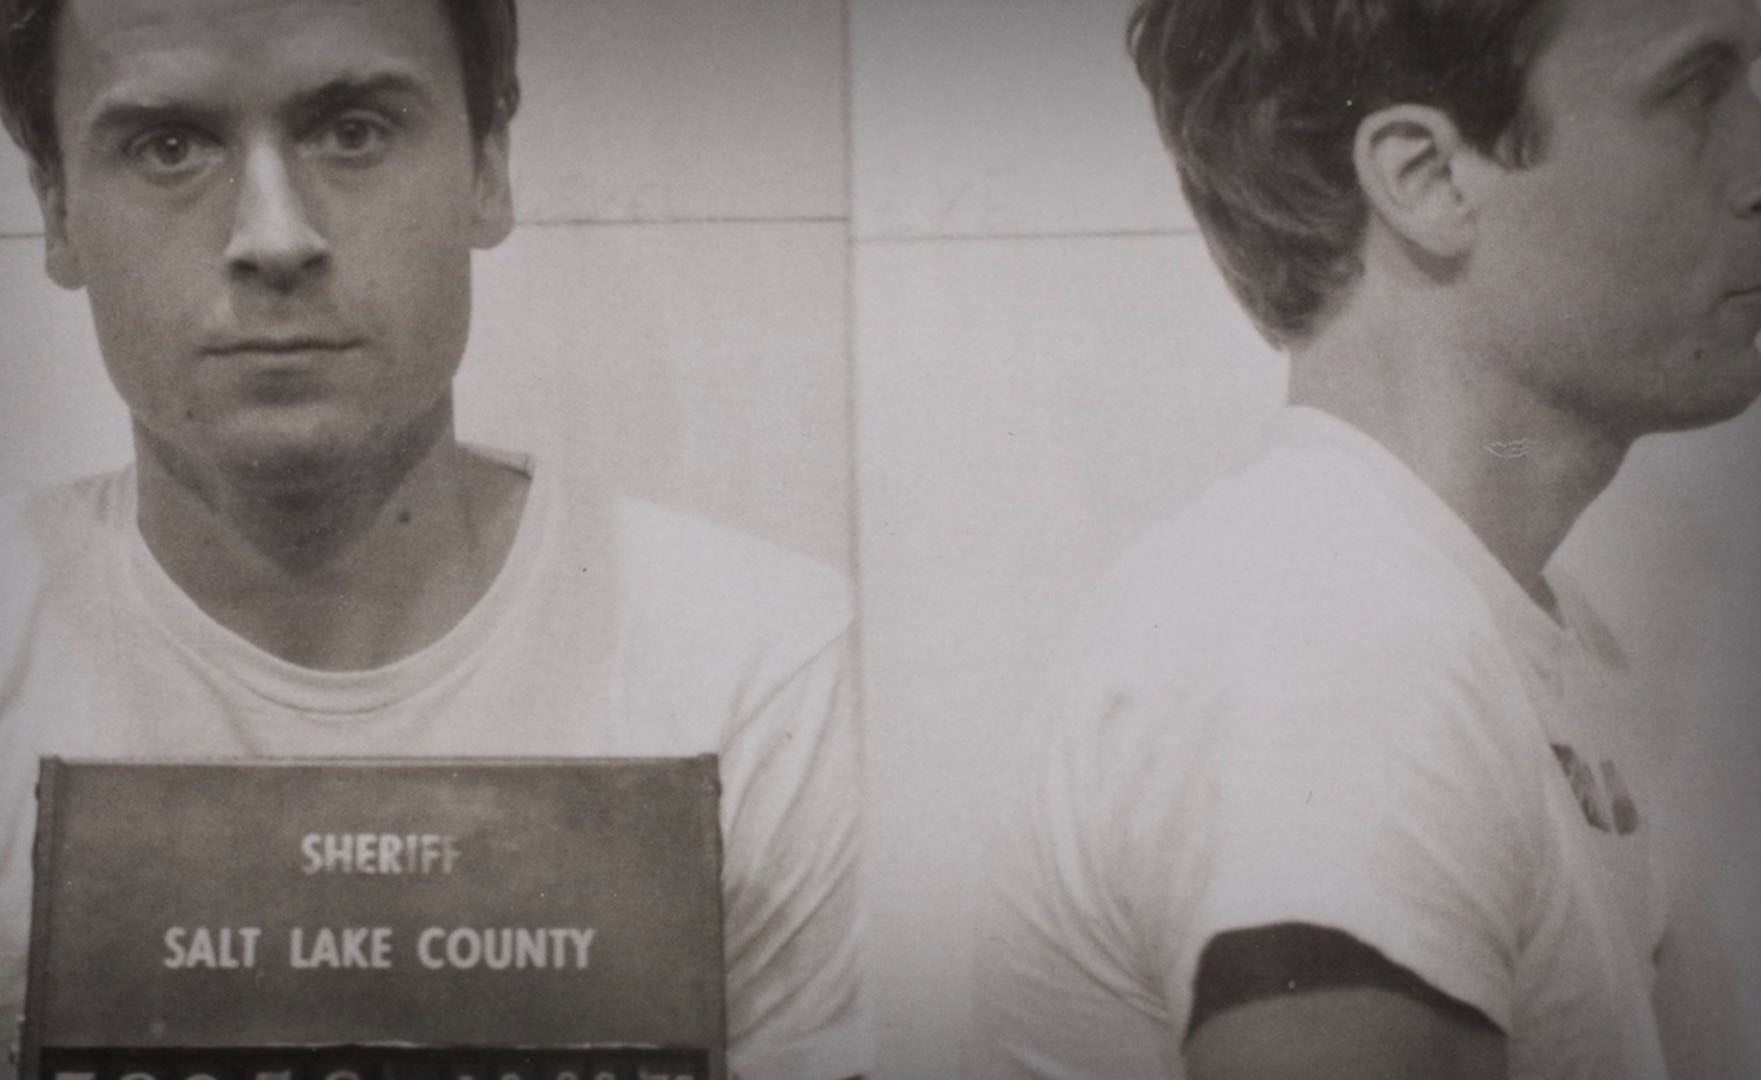 The Ted Bundy Tapes' Mindhunter link – Netflix's Ted Bundy Tapes